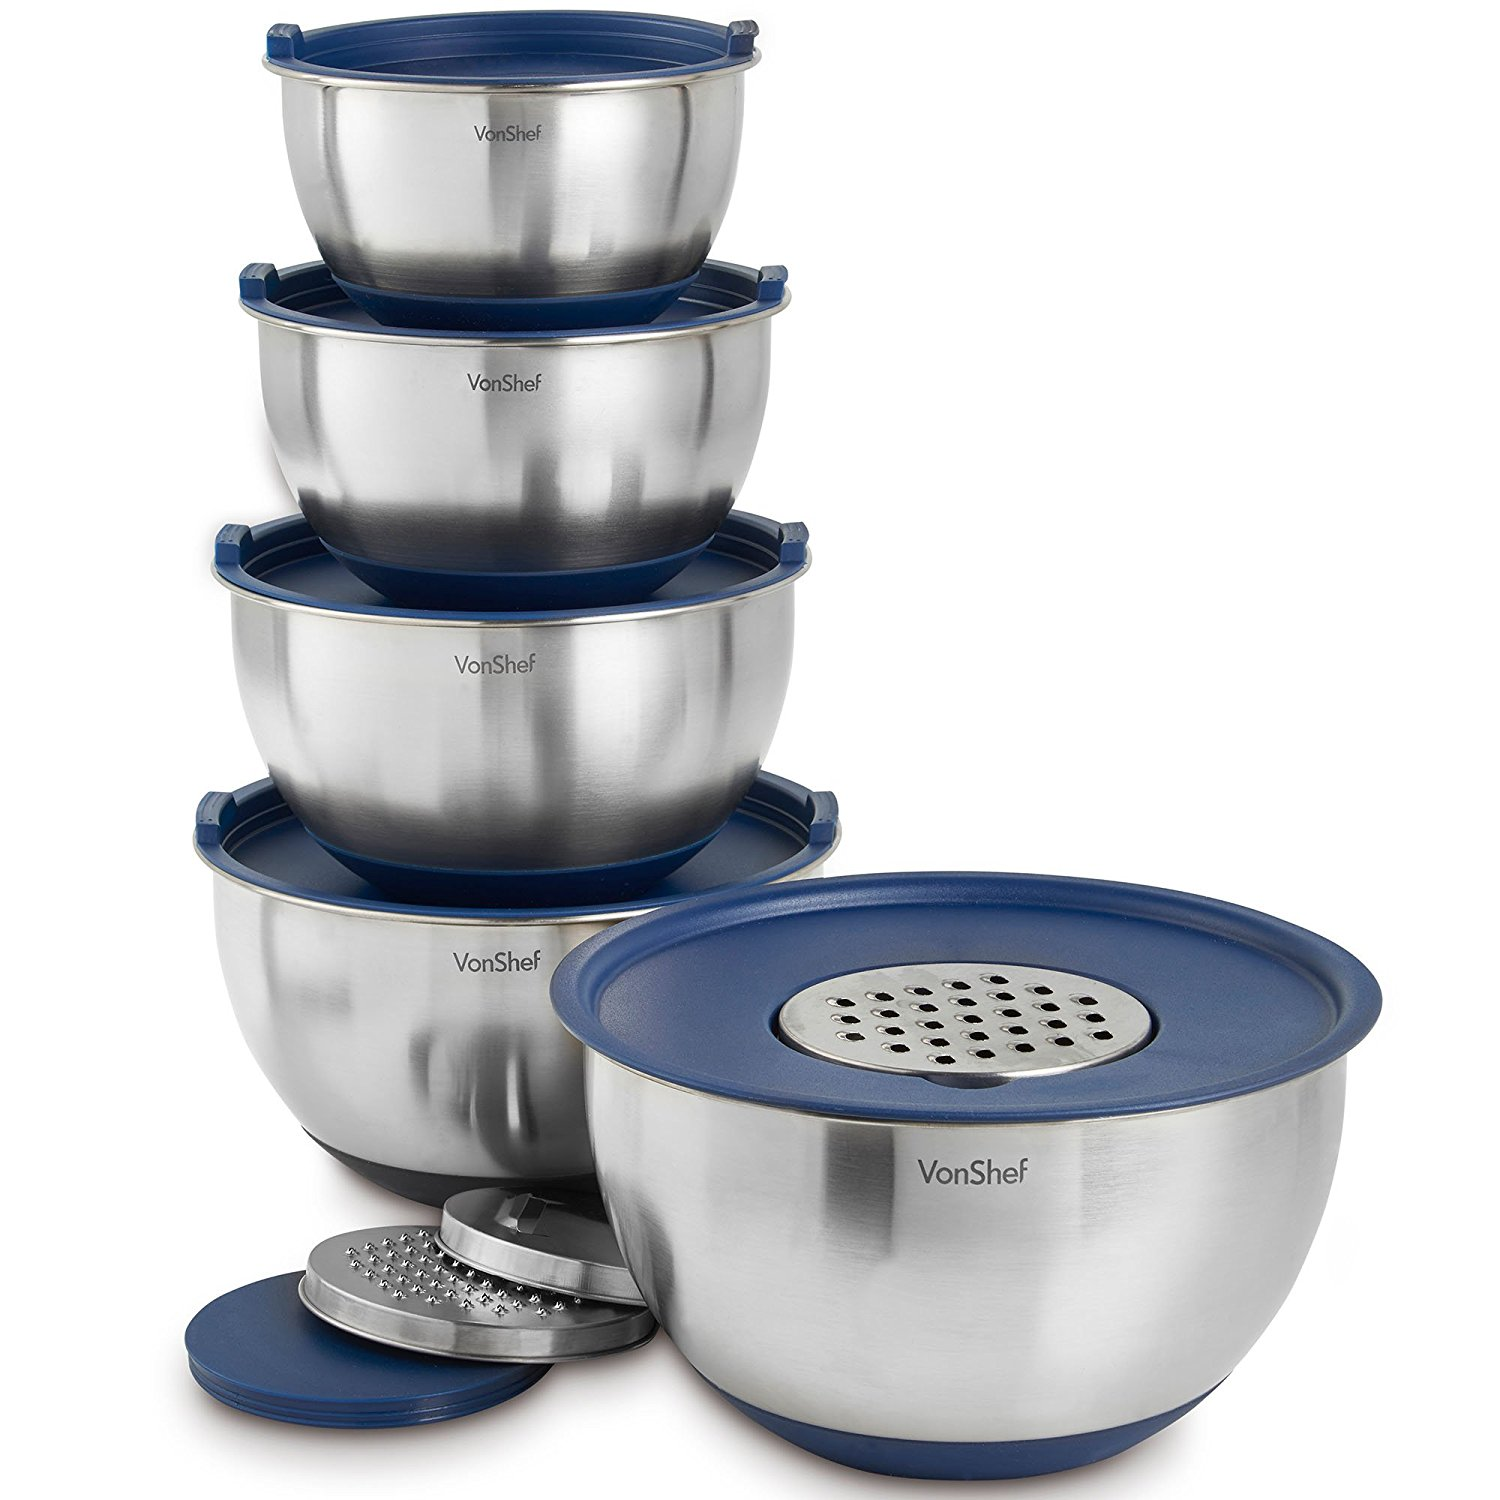 VonShef Nested Mixing Bowls with Lids